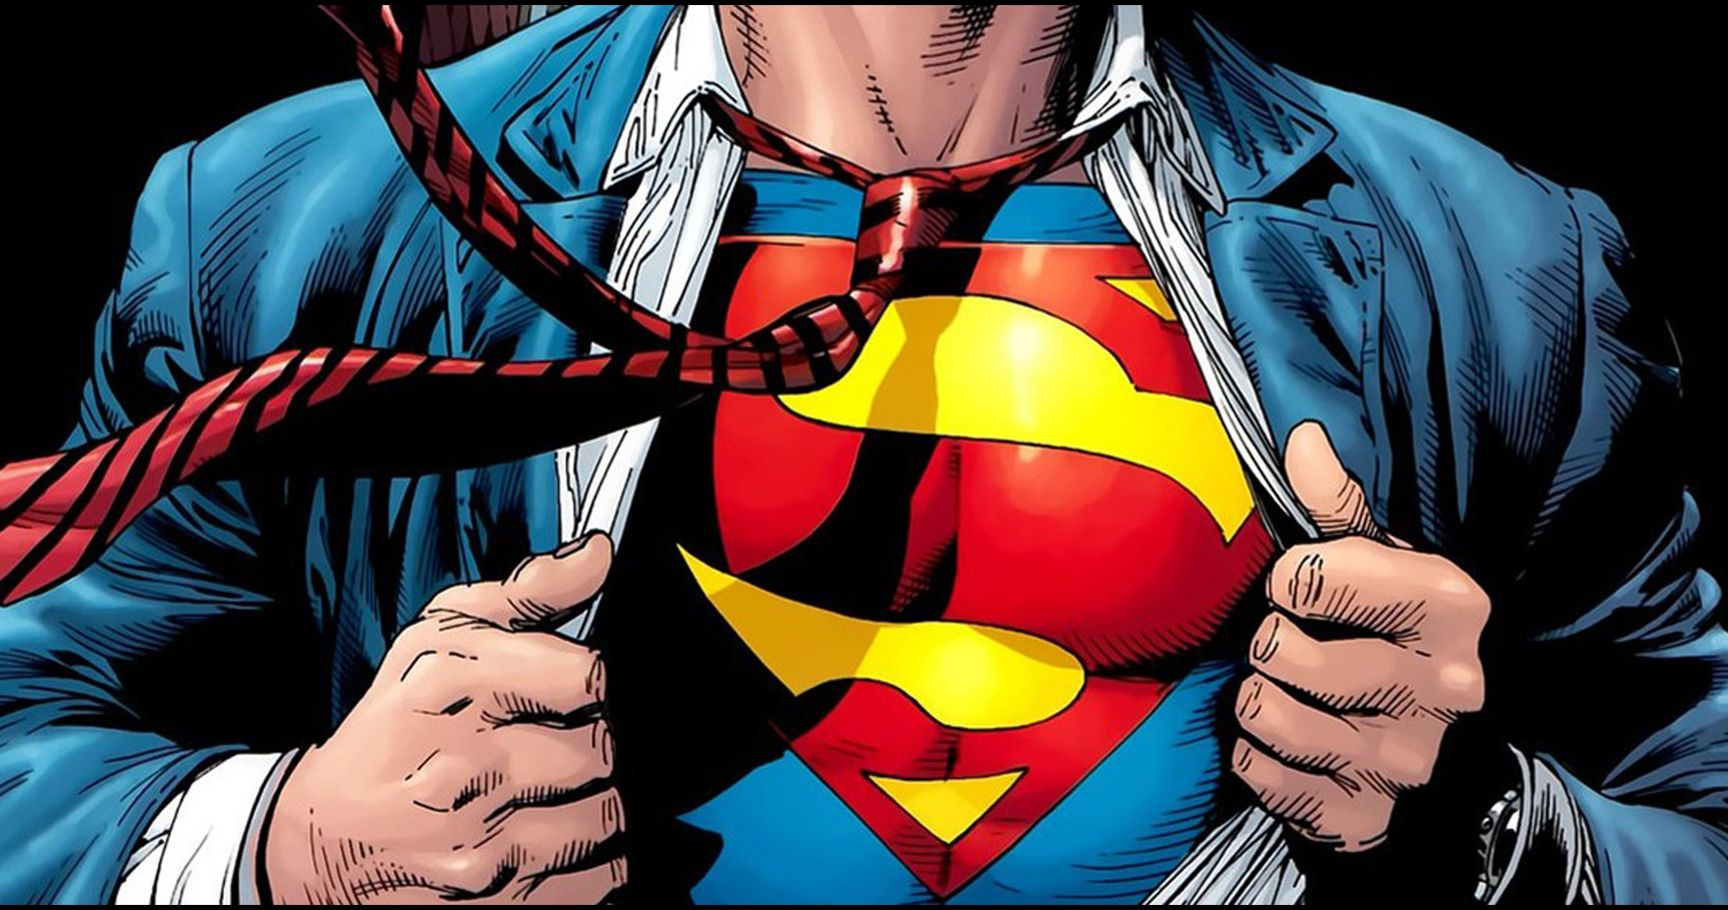 Test Your Super-Knowledge on The Man of Steel!